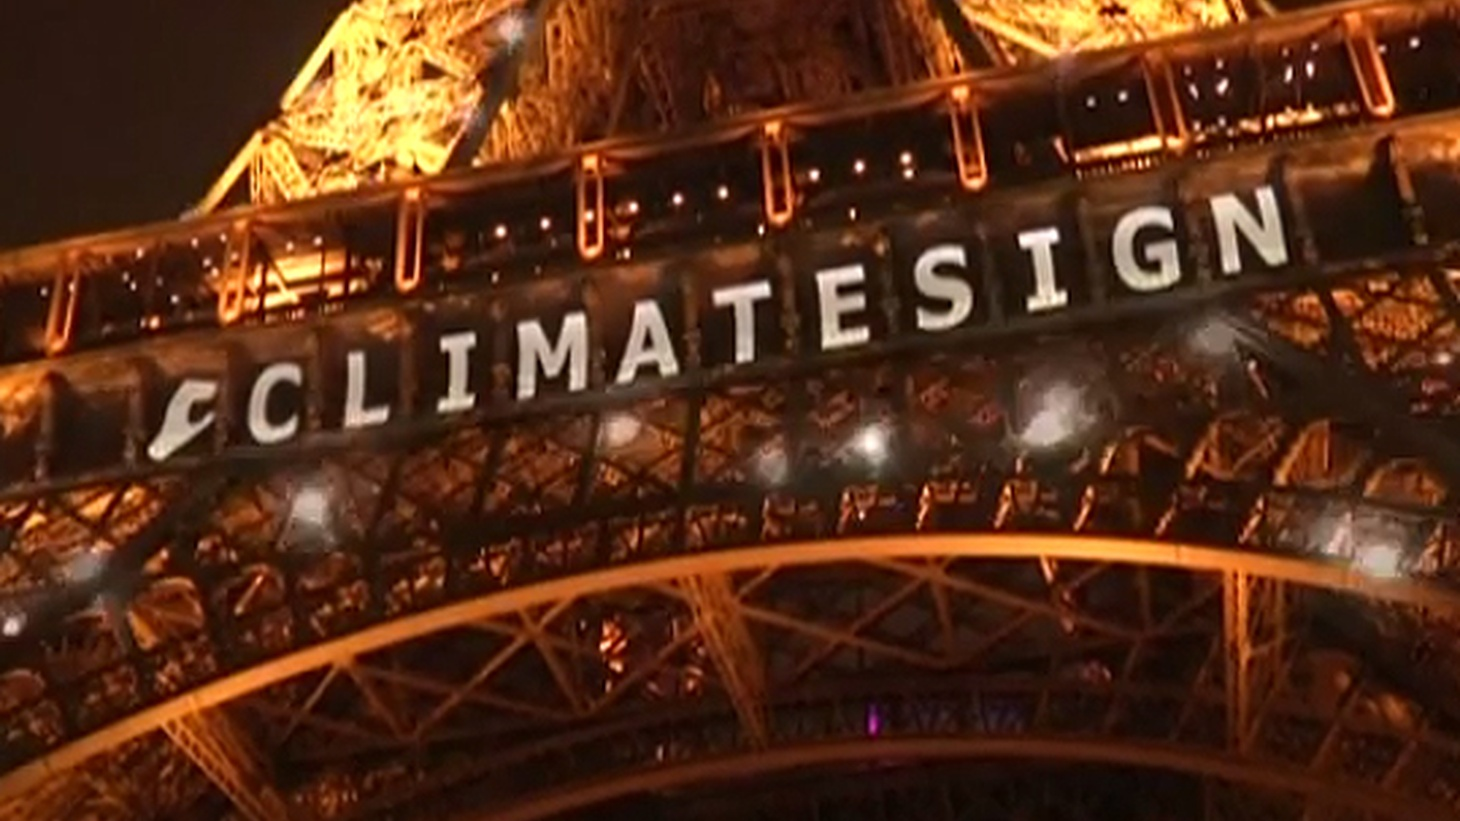 More than 150 heads of state have recognized the science of climate change, but denial is alive and well in the US Senate. We hear how that helped shape this weekend's international agreement in Paris.